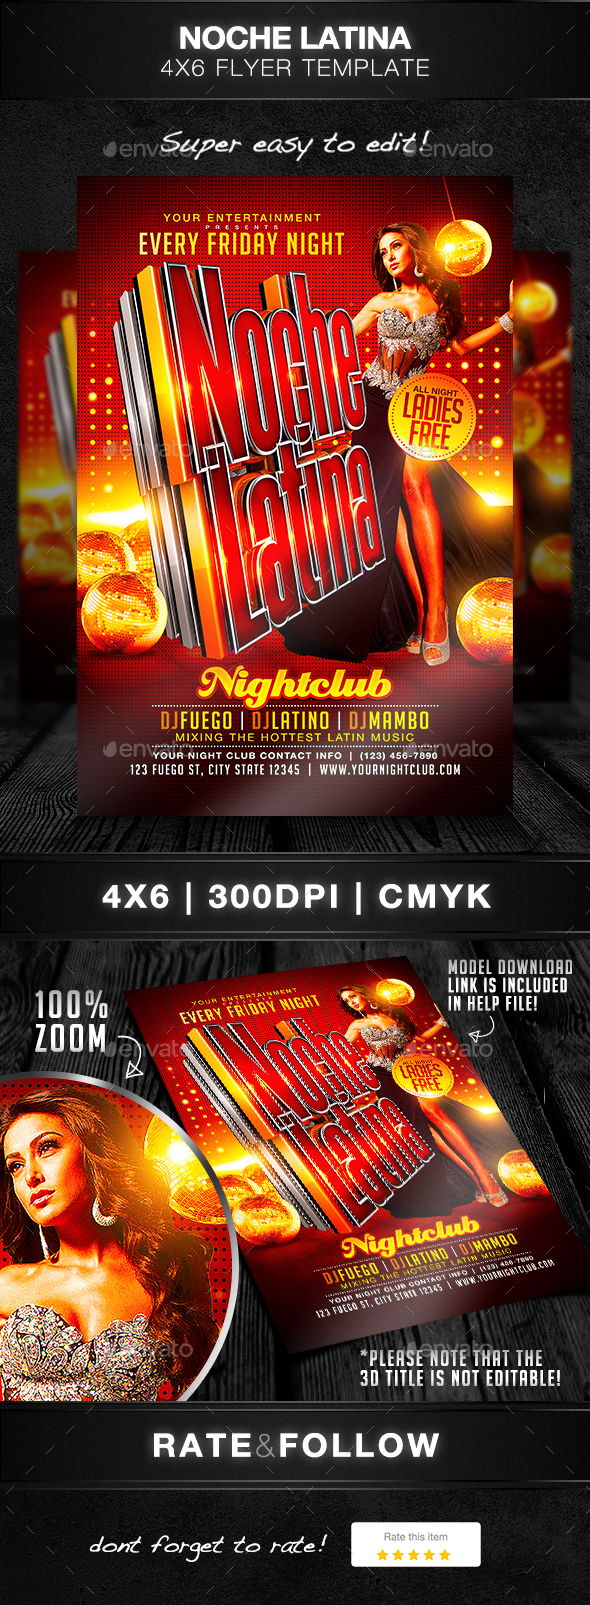 Noche Latina Flyer Template - Clubs & Parties Events